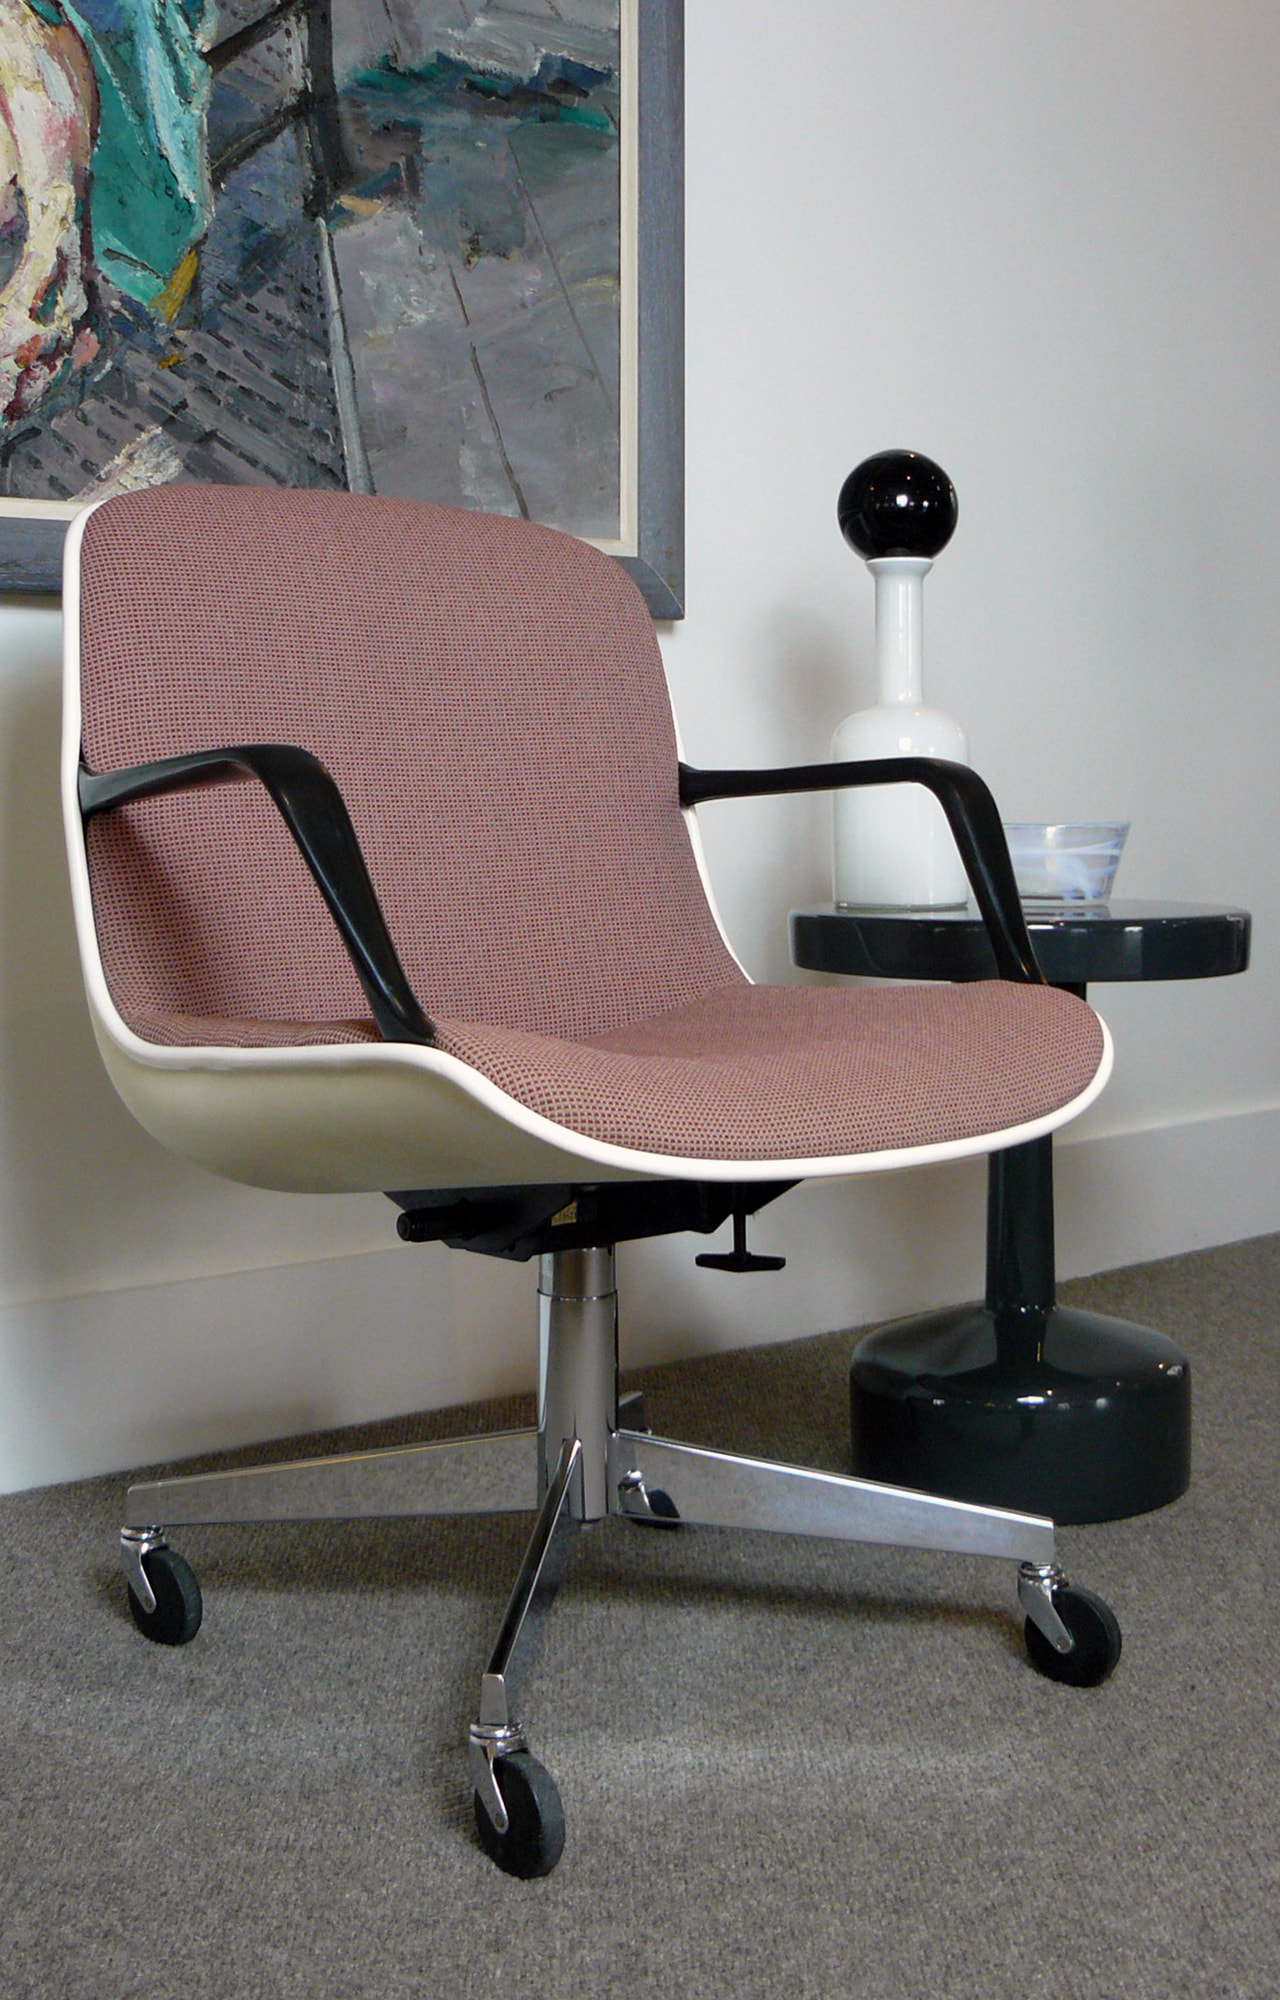 Vintage 1970s Swivel Desk Chair By Charles Pollock For Knoll